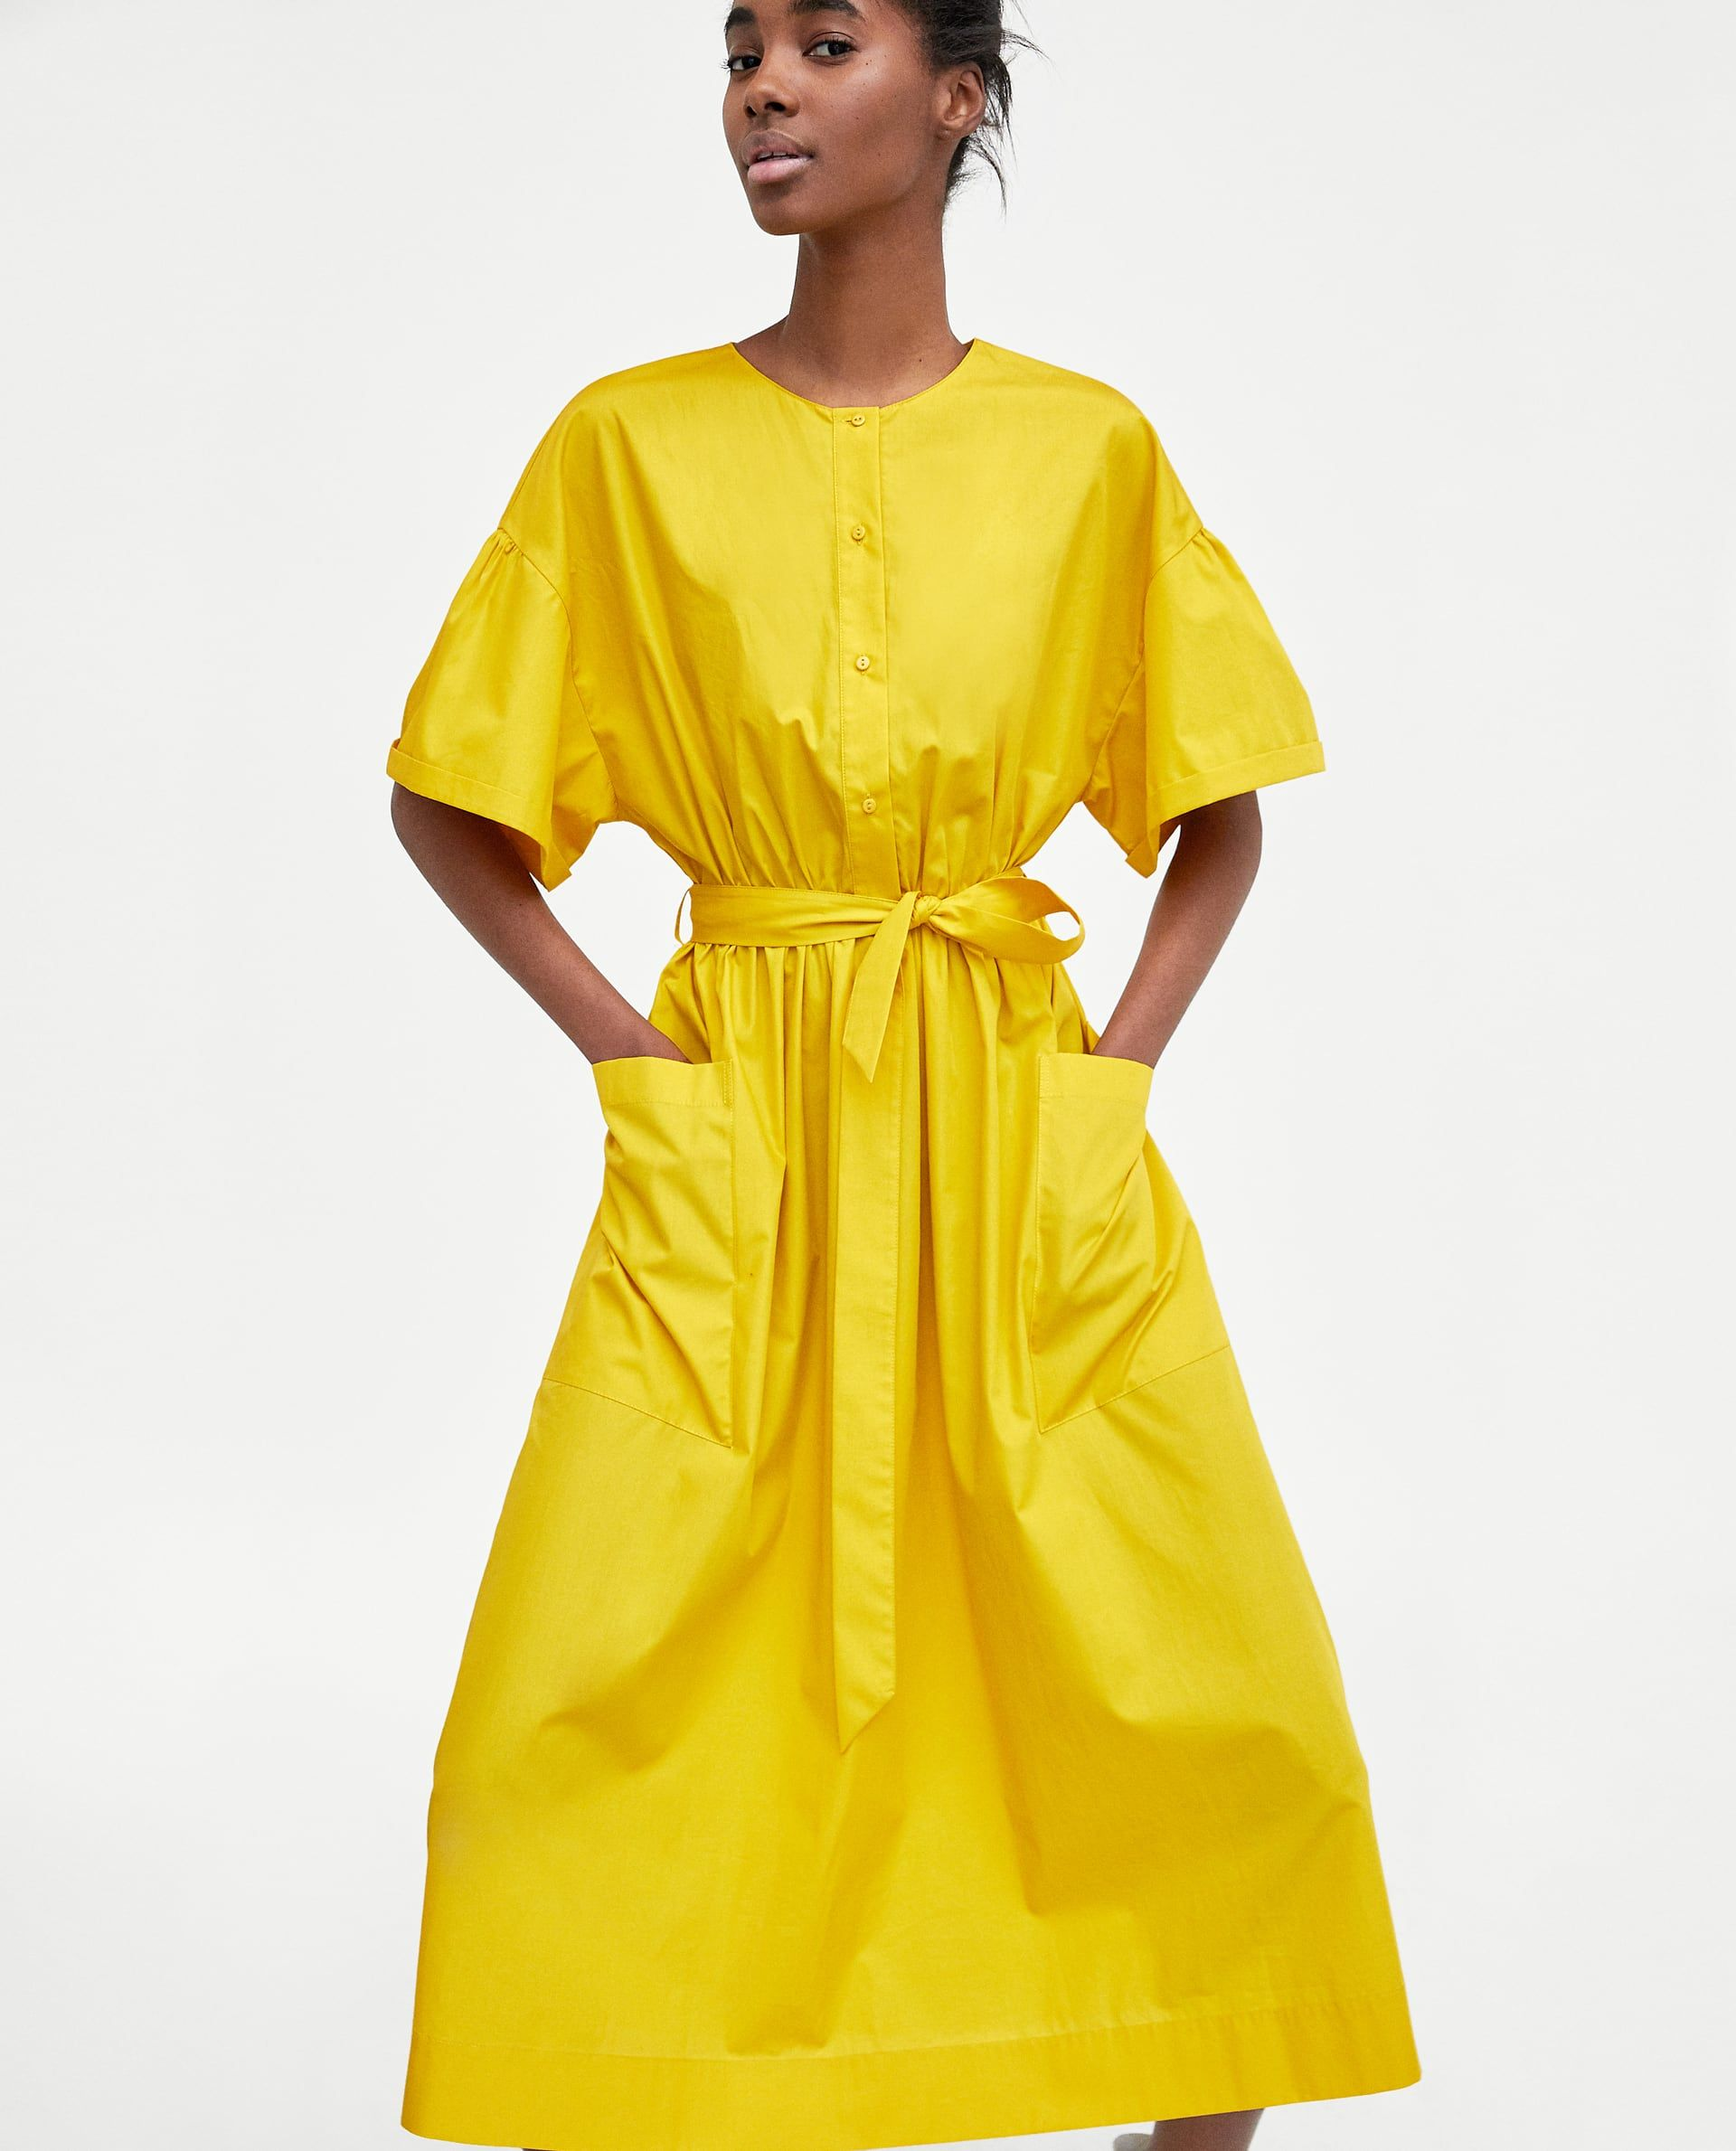 339a2c7d5421 Women's Dresses | New Collection Online | ZARA United States ...